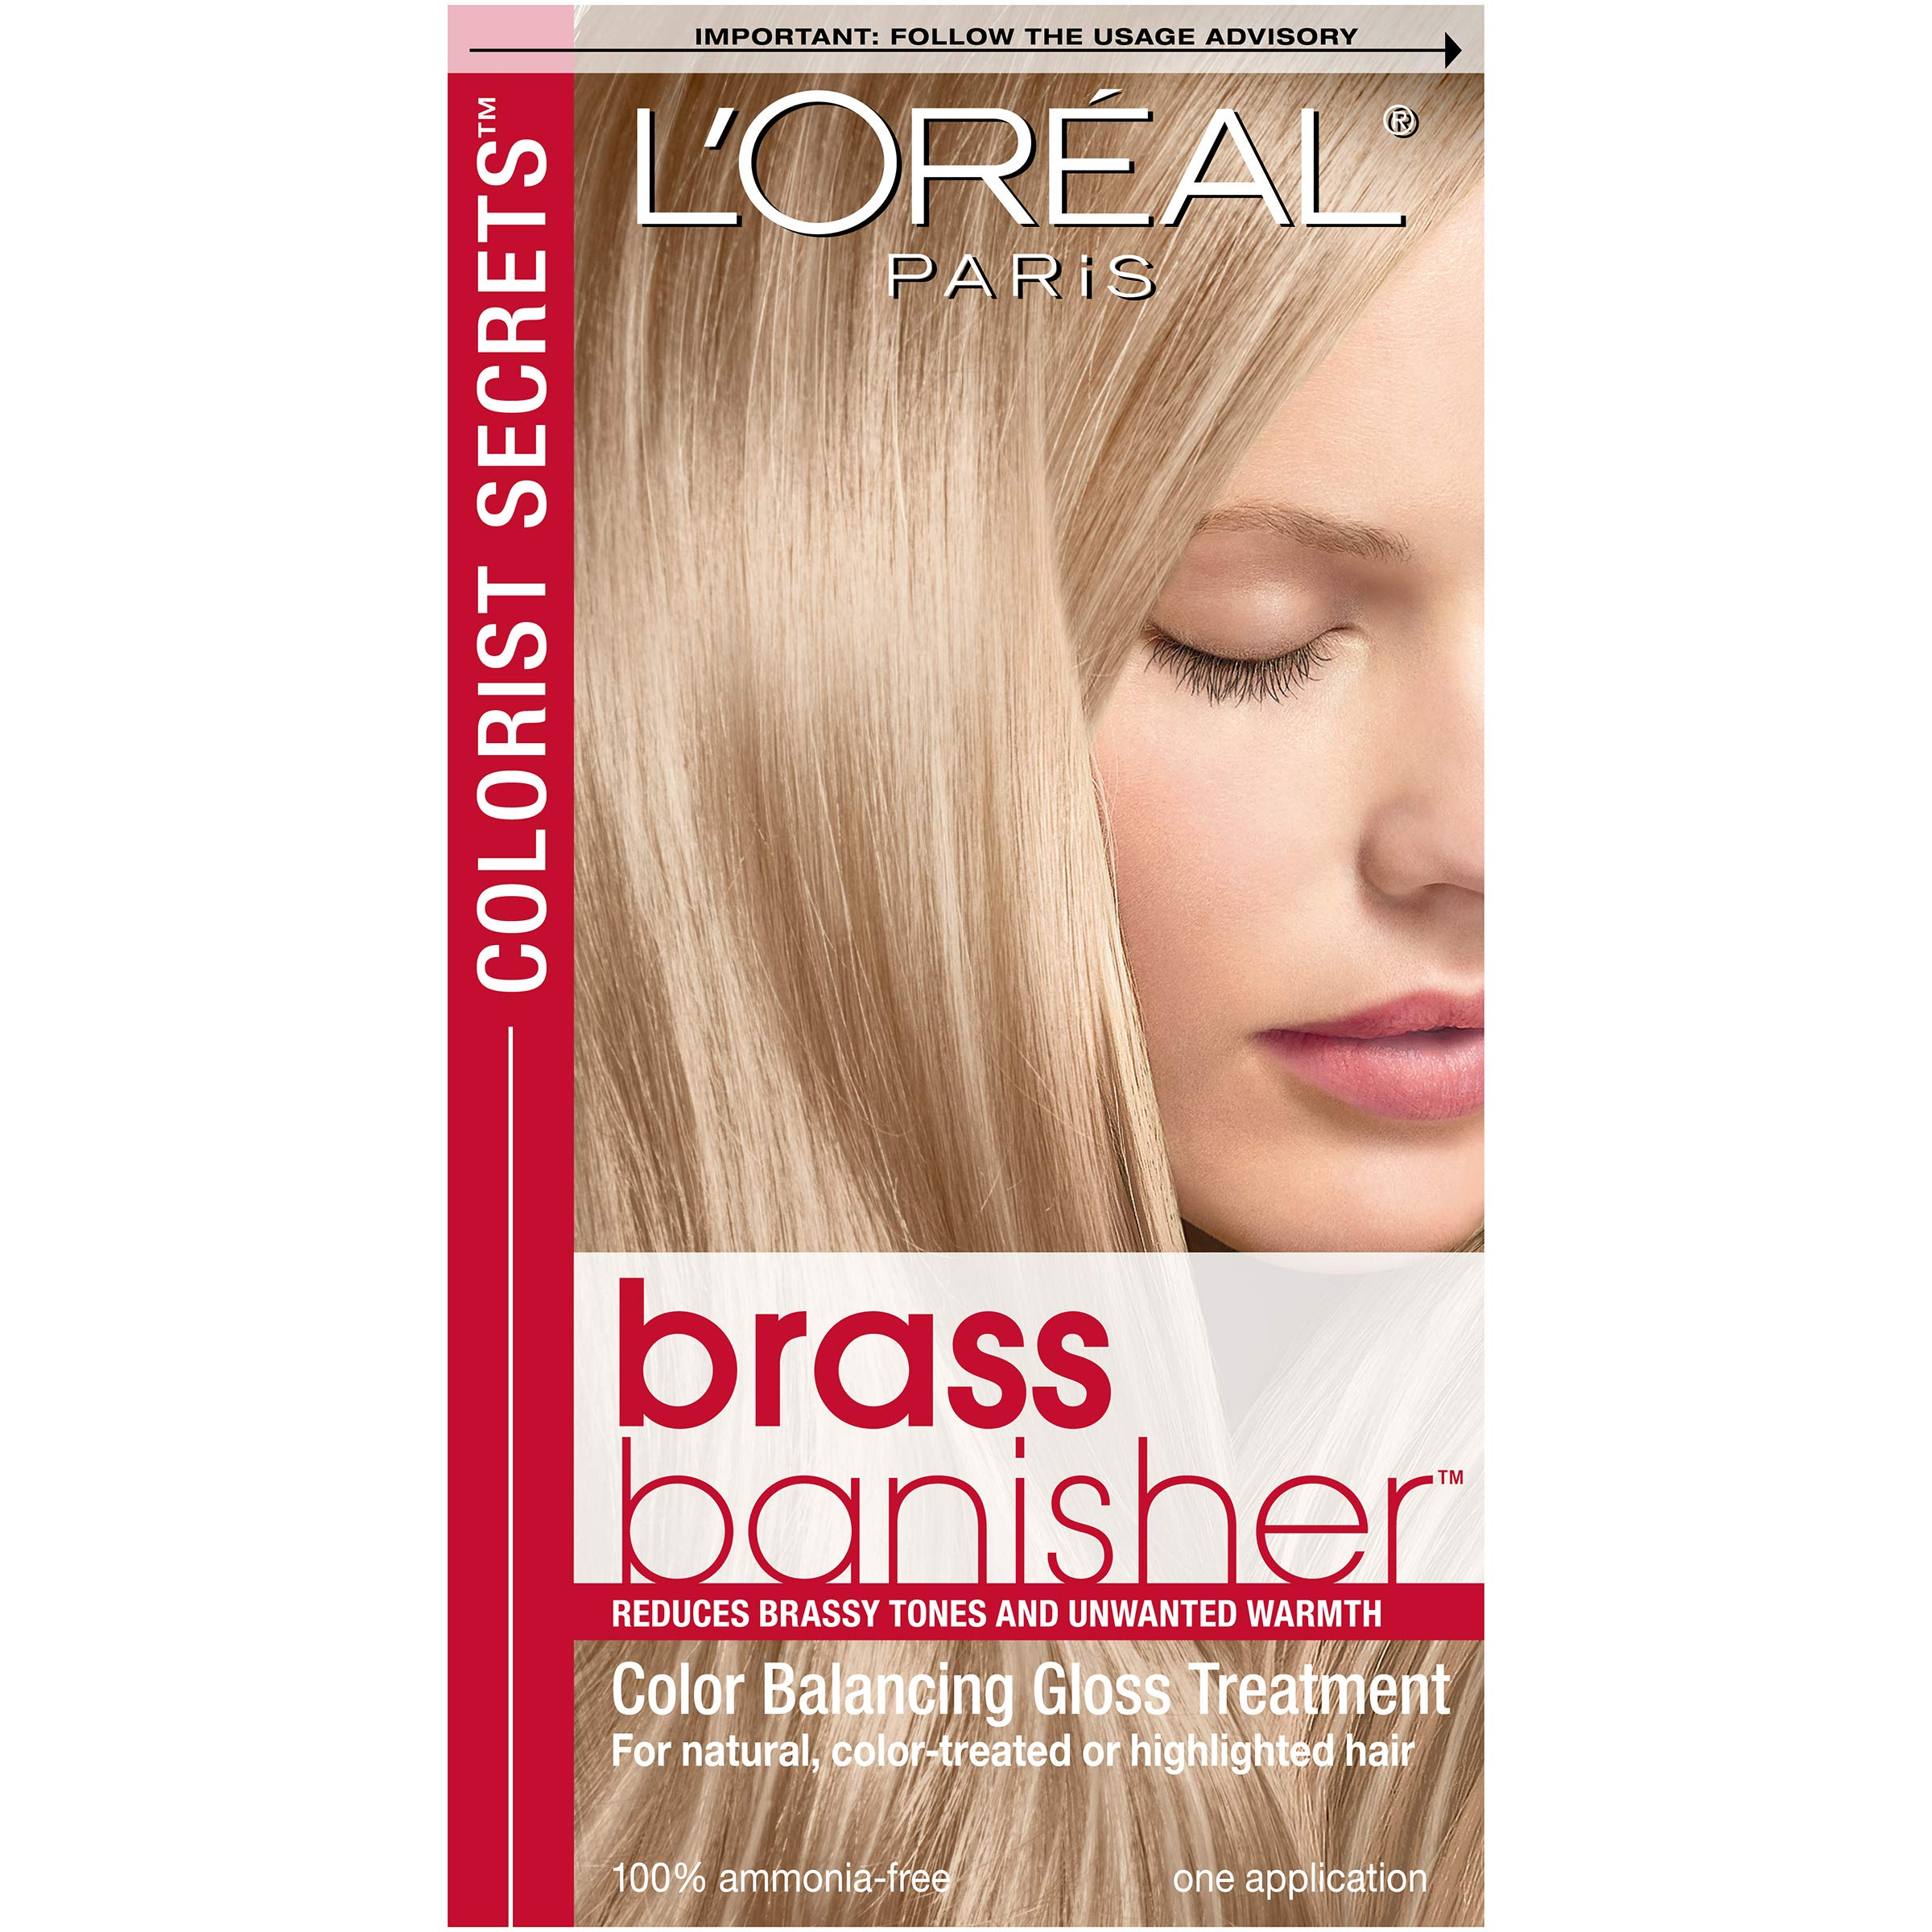 Amazon Loral Paris Colorist Secrets Brass Banisher Color